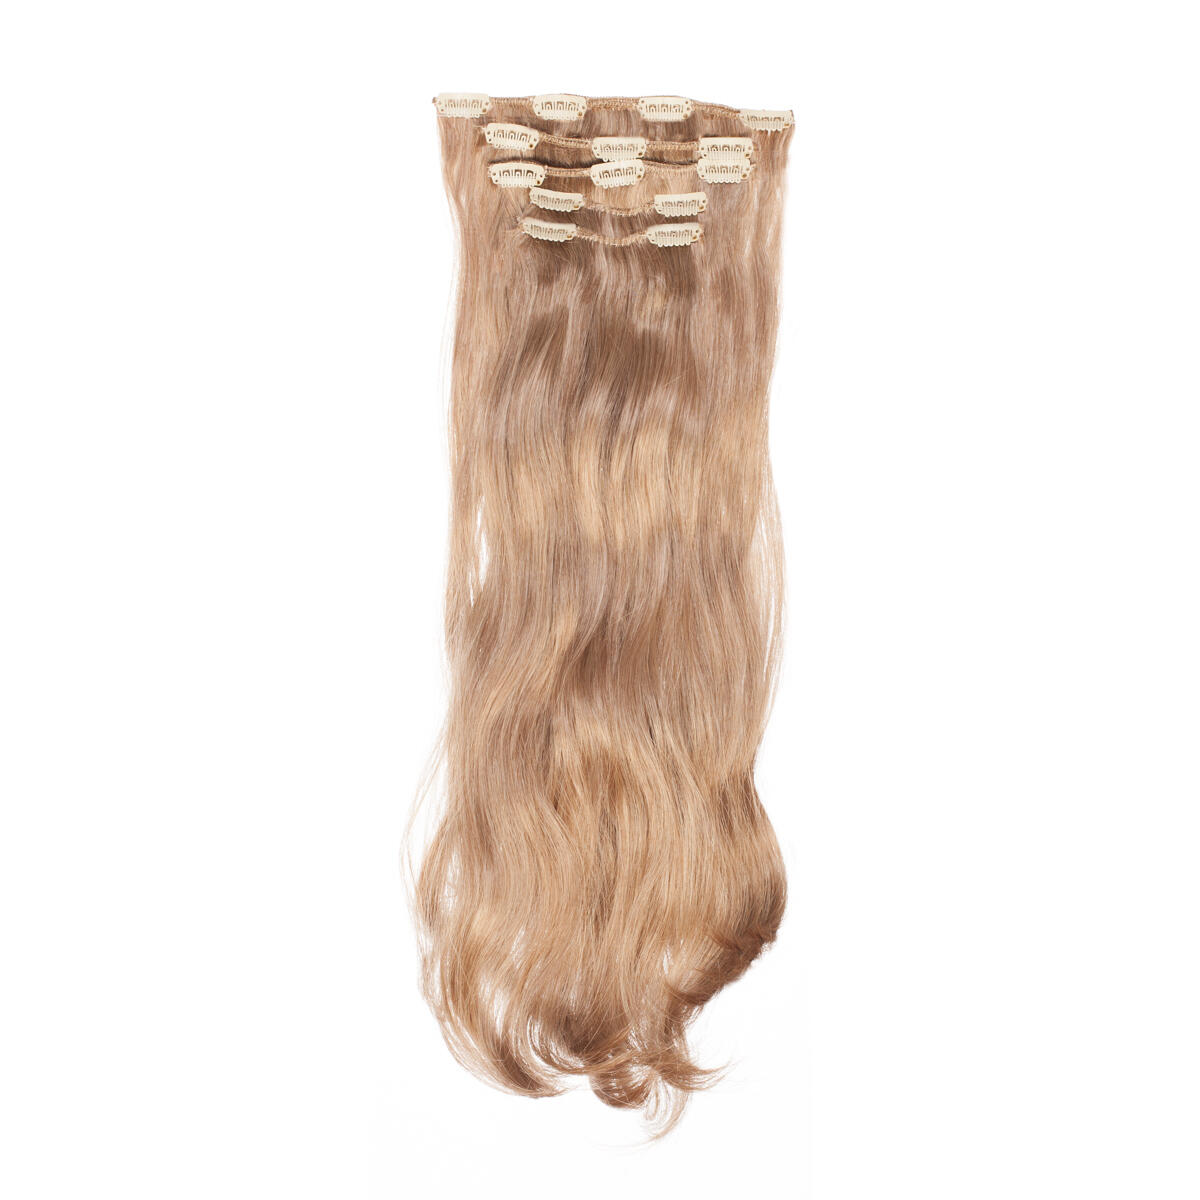 Clip-on Set Synthetic 5 pieces Beach Wave 4.1 Cendre Ash Blonde 50 cm